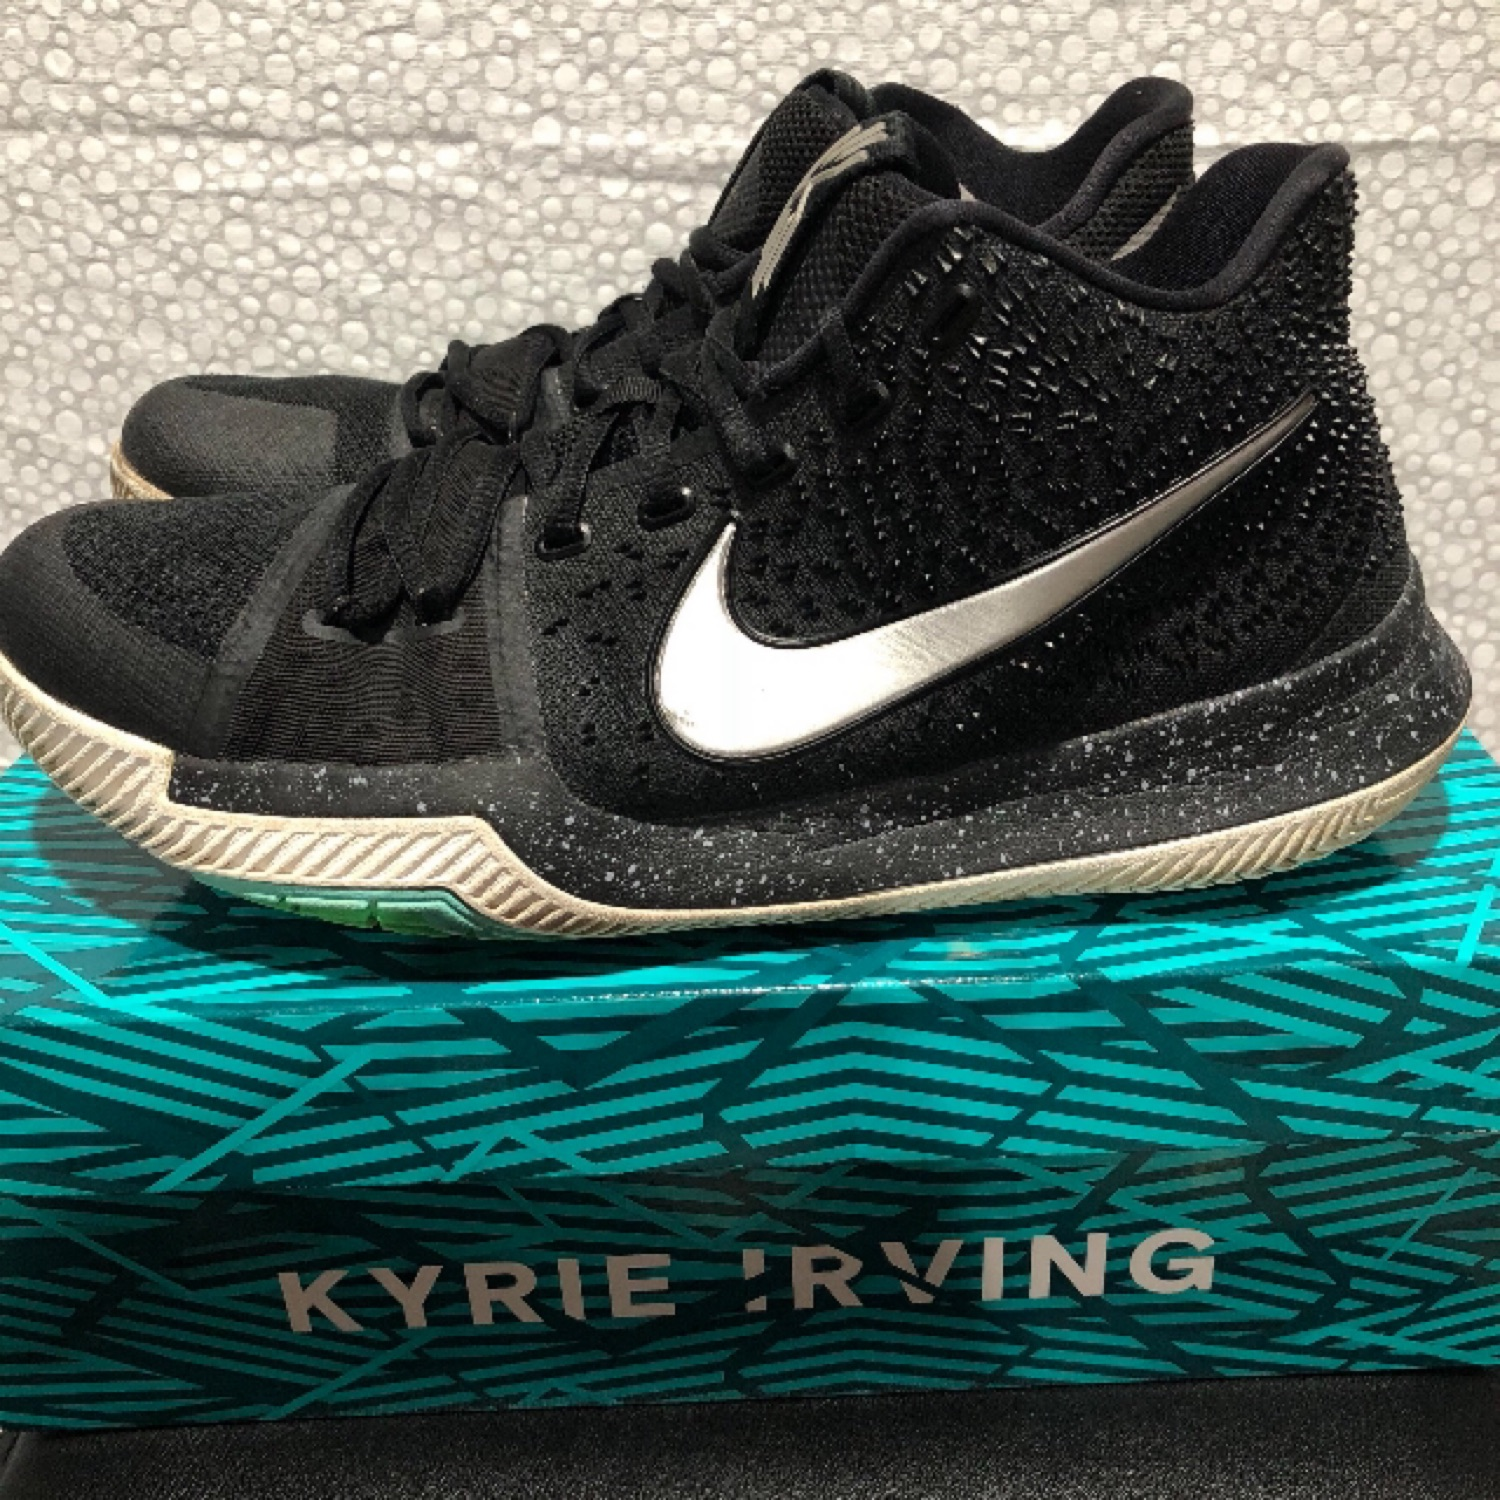 reputable site bbbb1 9f6bb Nike Men's Kyrie 3 Blk/Ice